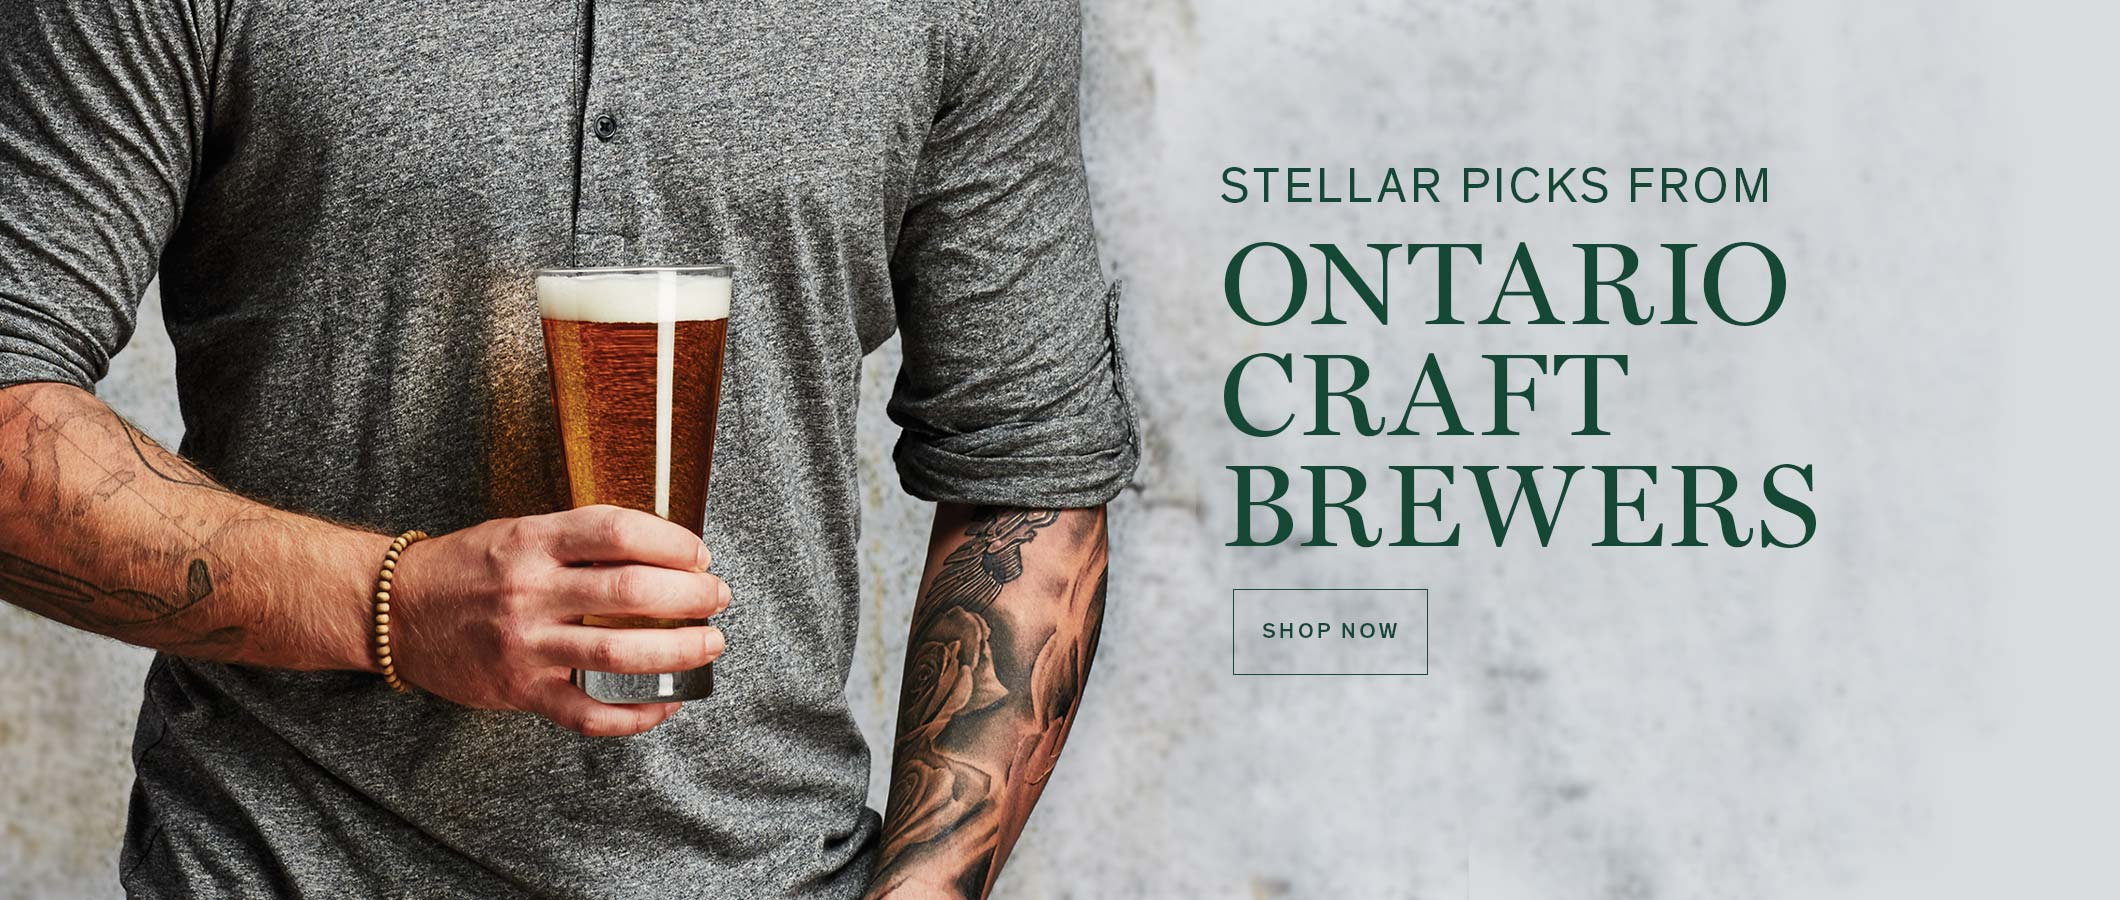 STELLAR PICKS FROM ONTARIO CRAFT BREWERS. SHOP NOW.